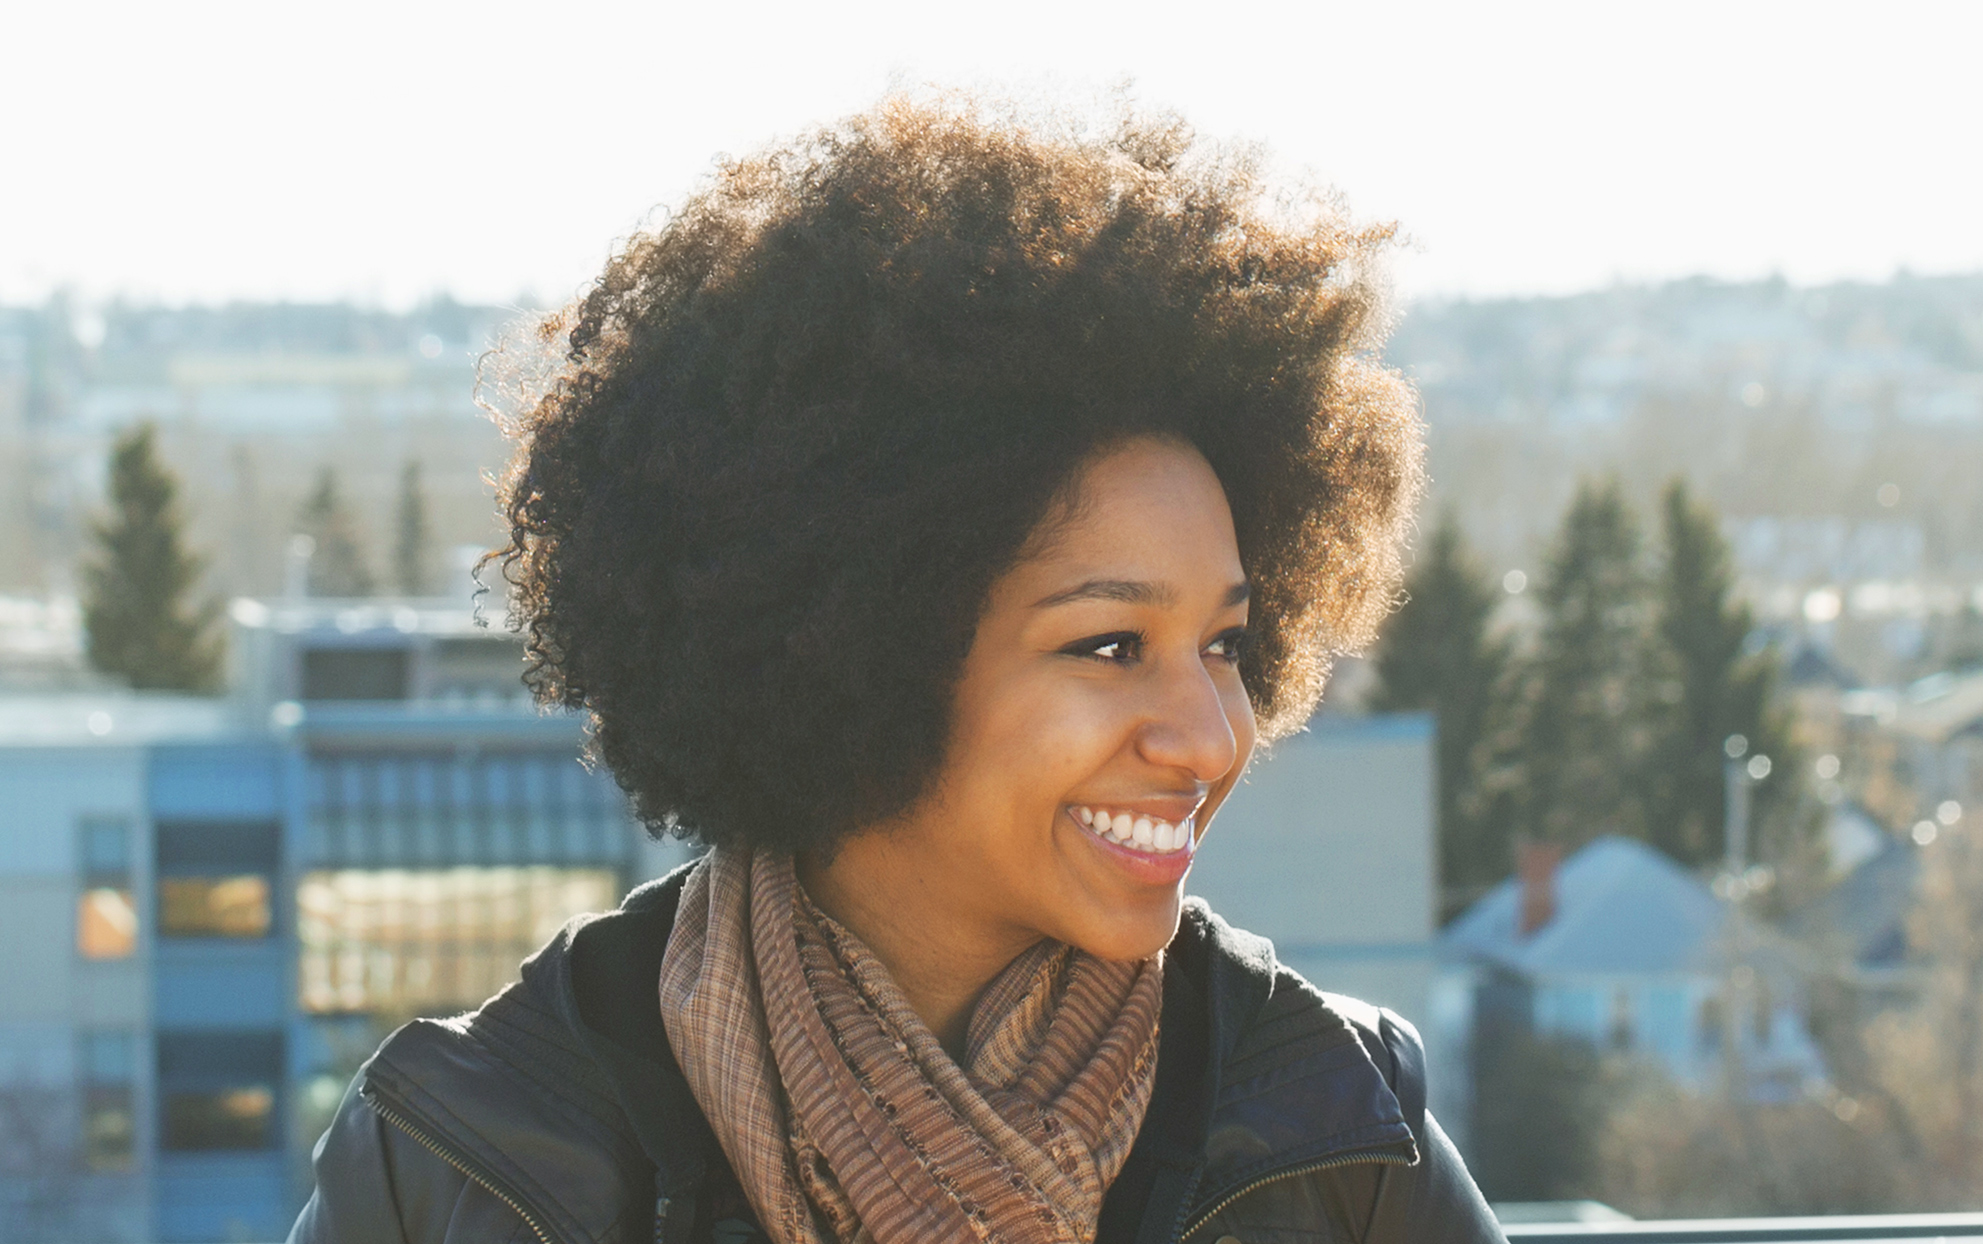 african american woman with short curly hair smiling outside in a jacket